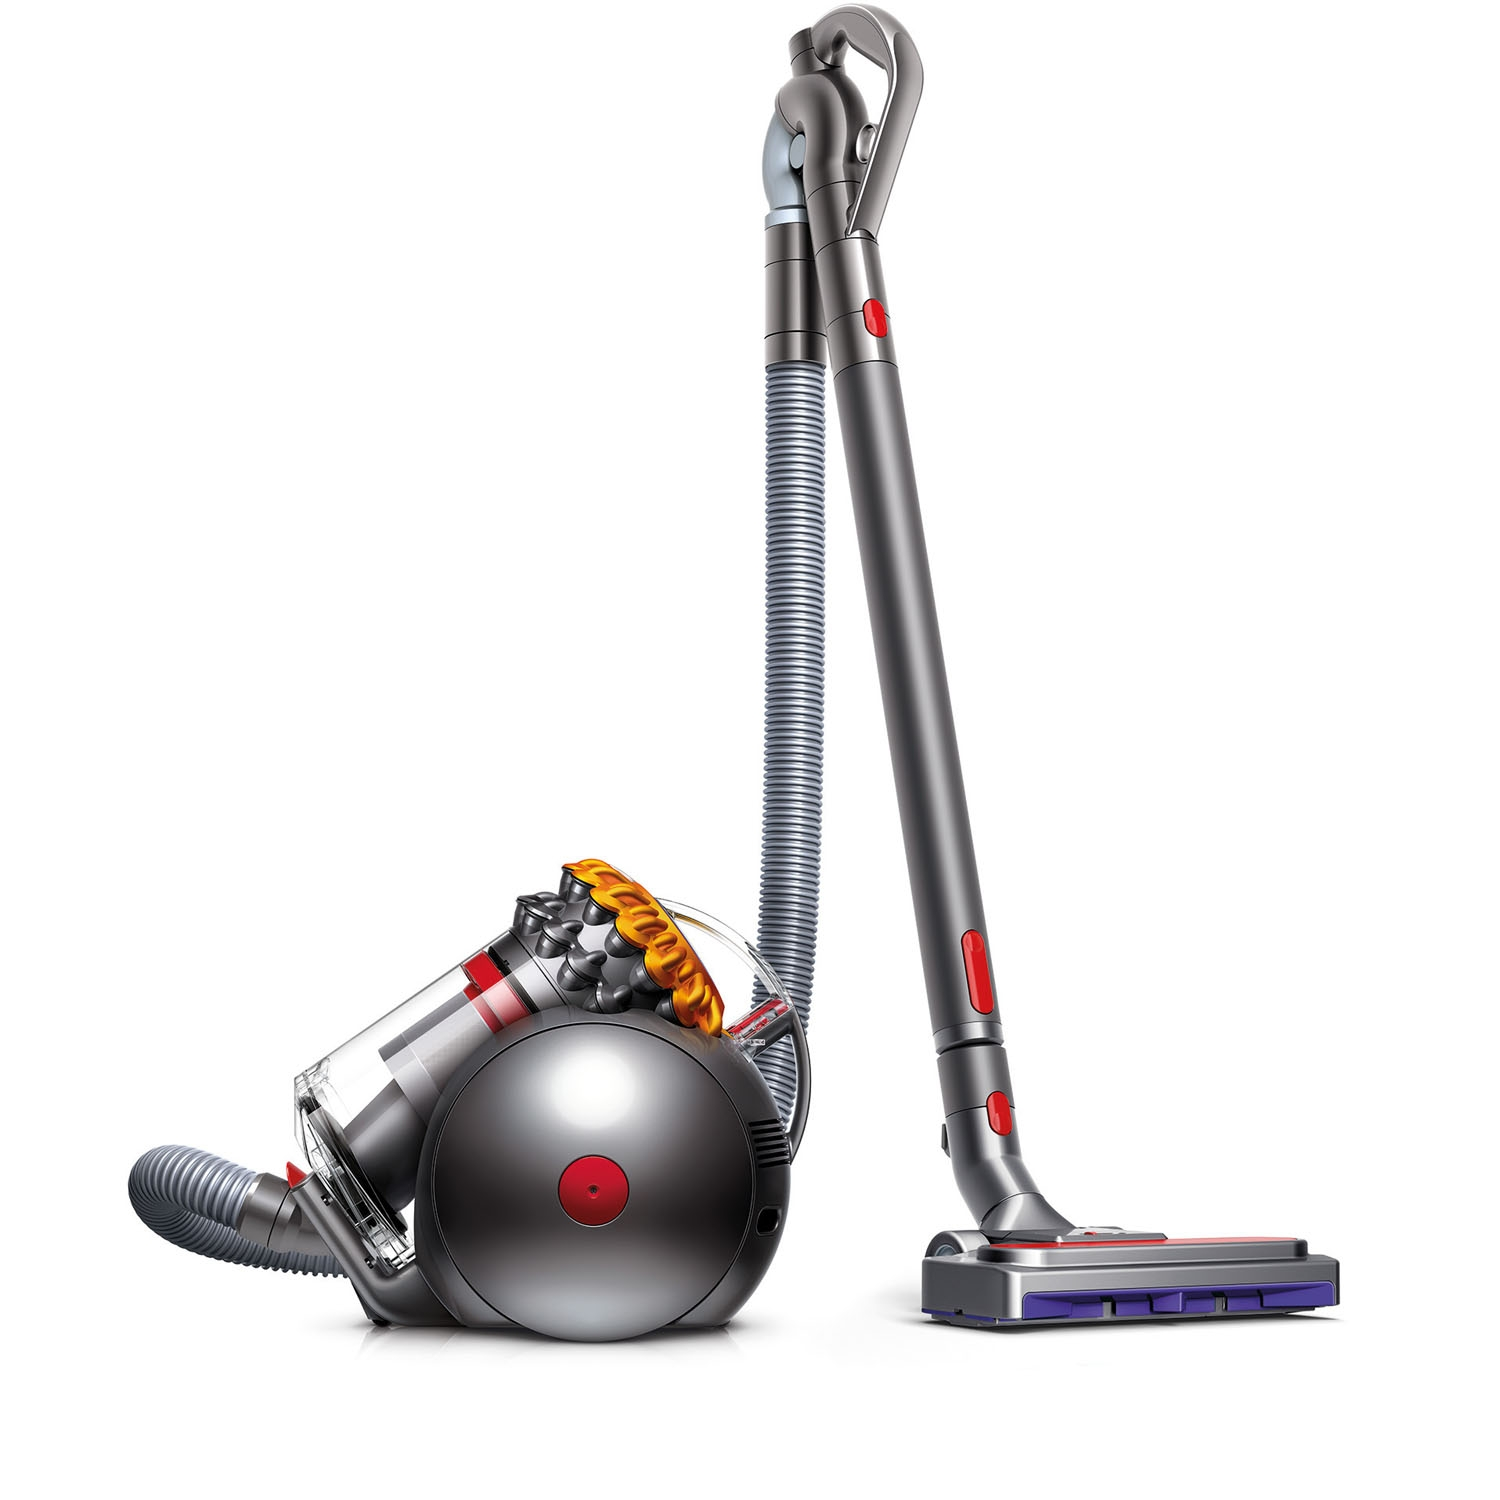 Image of Dyson Big Ball Multi Floor 2 Cylinder Vacuum Cleaner